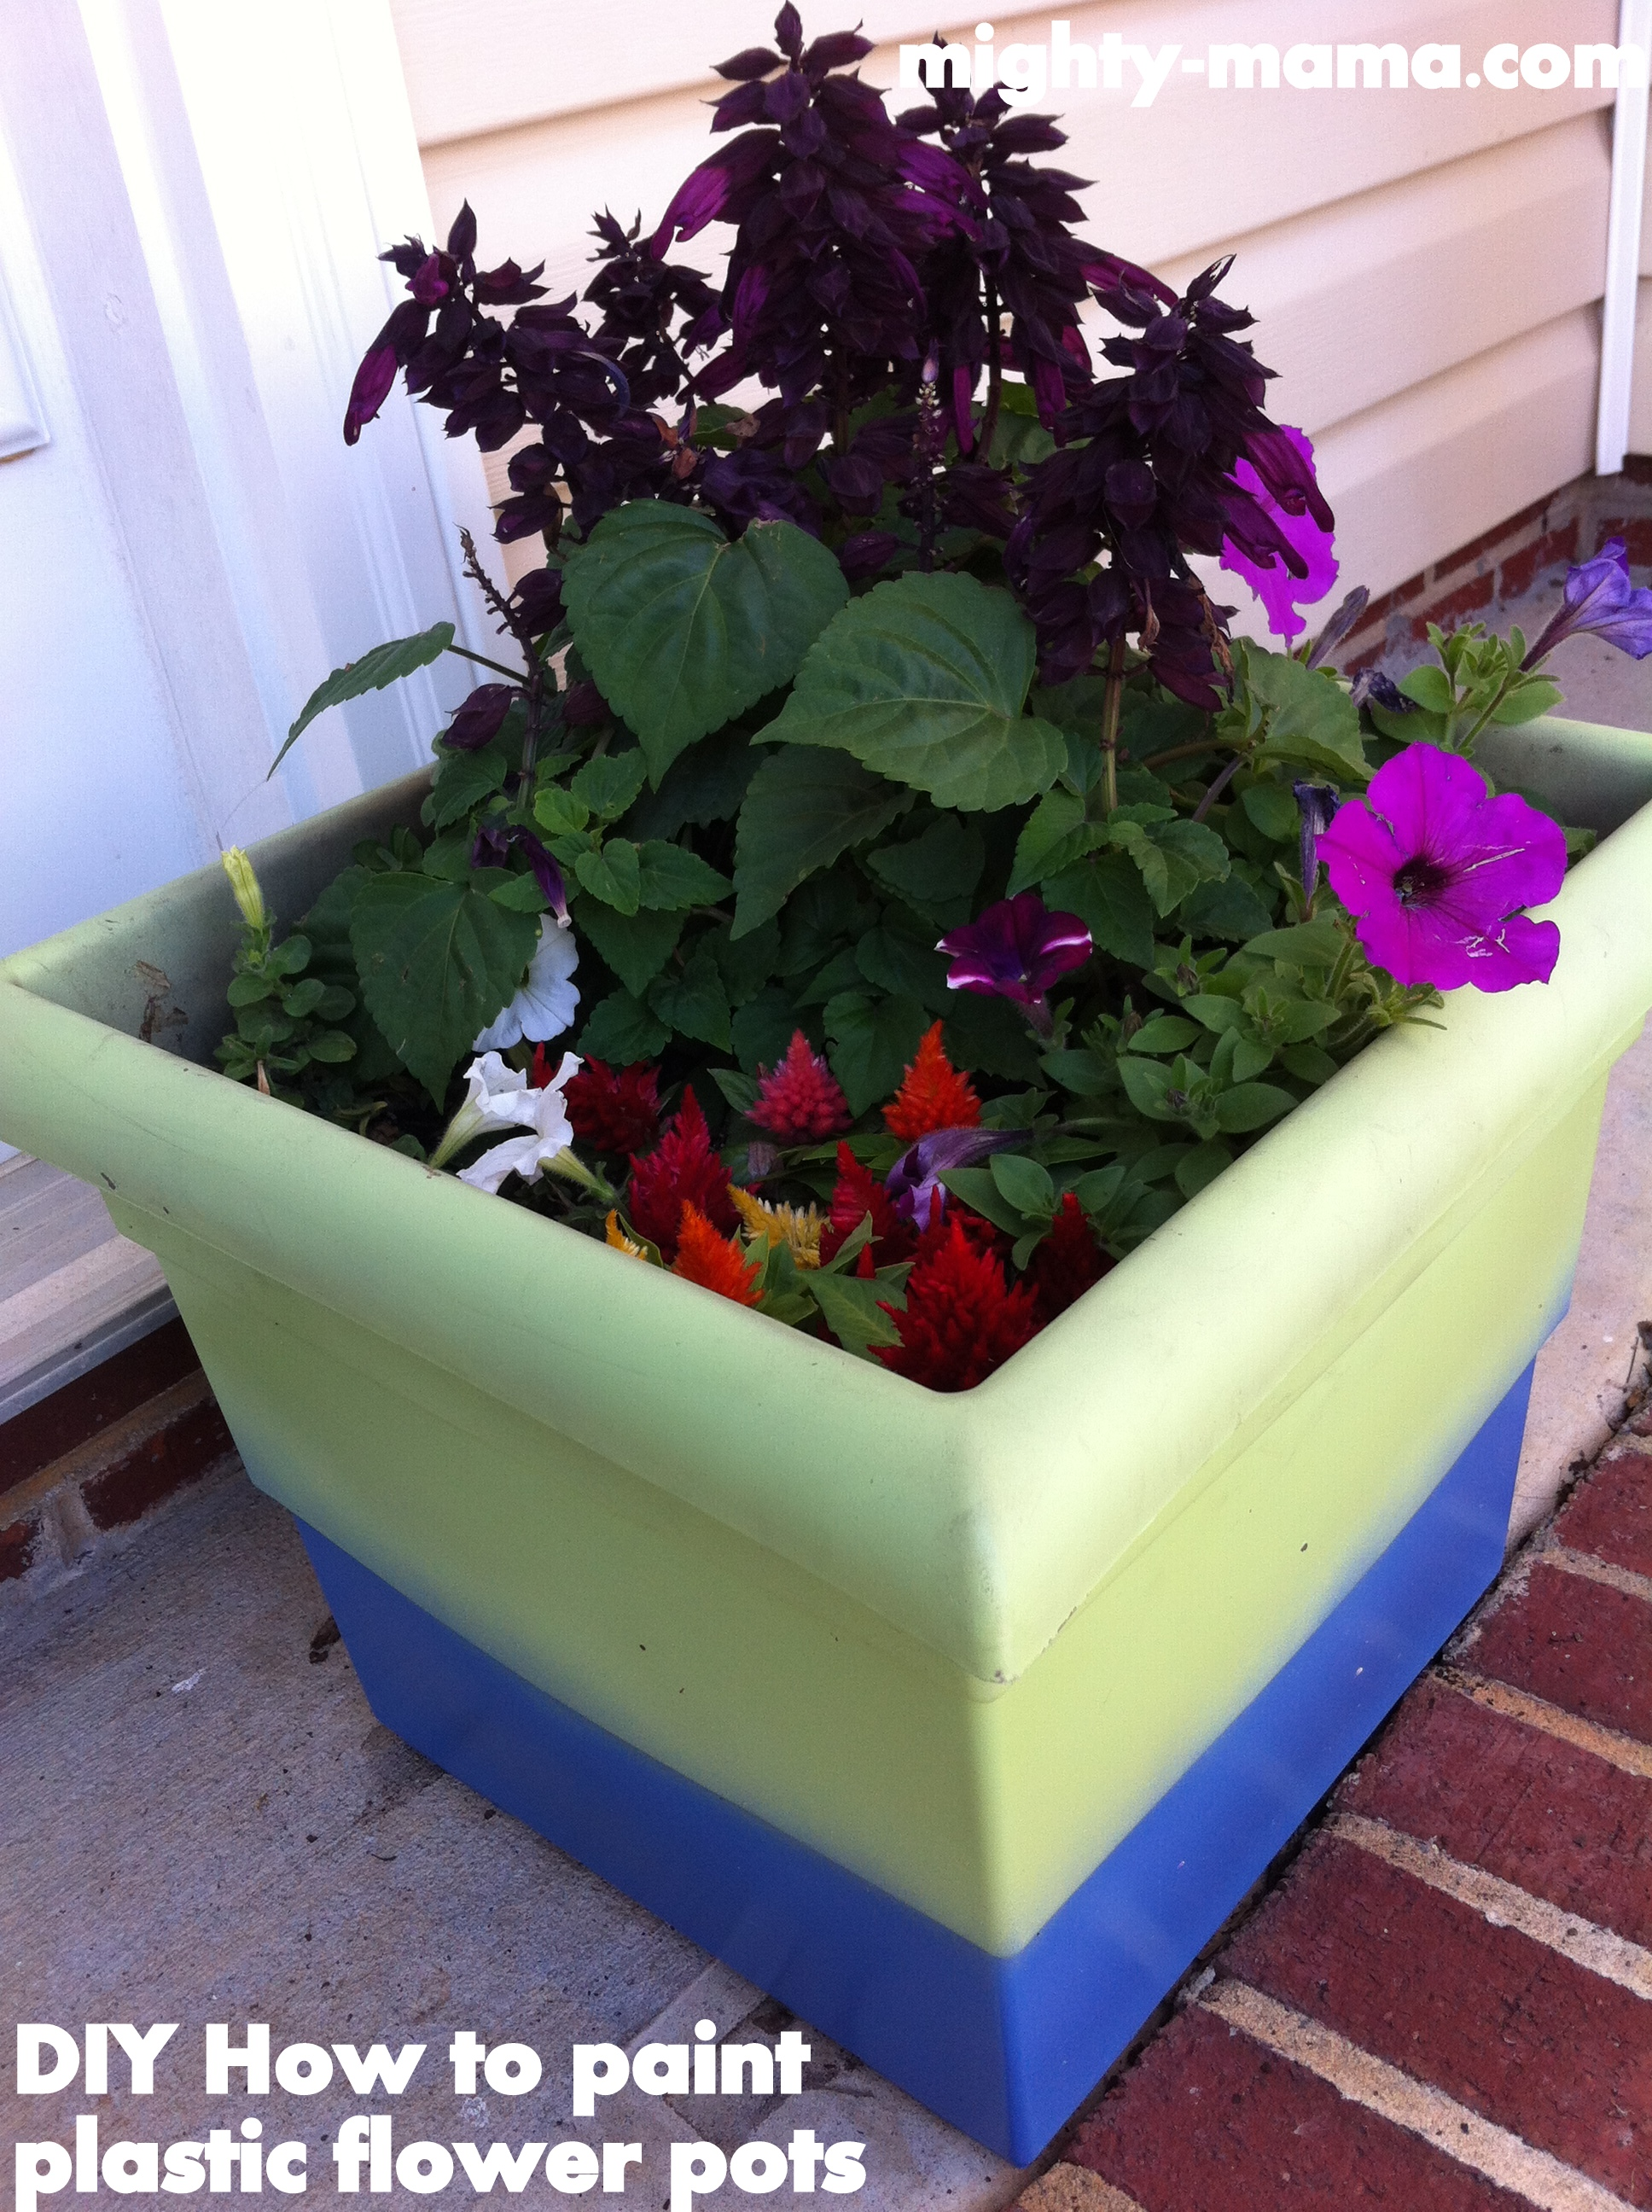 Mighty Mama - WordPress.com : paint for plastic flower pots - startupinsights.org